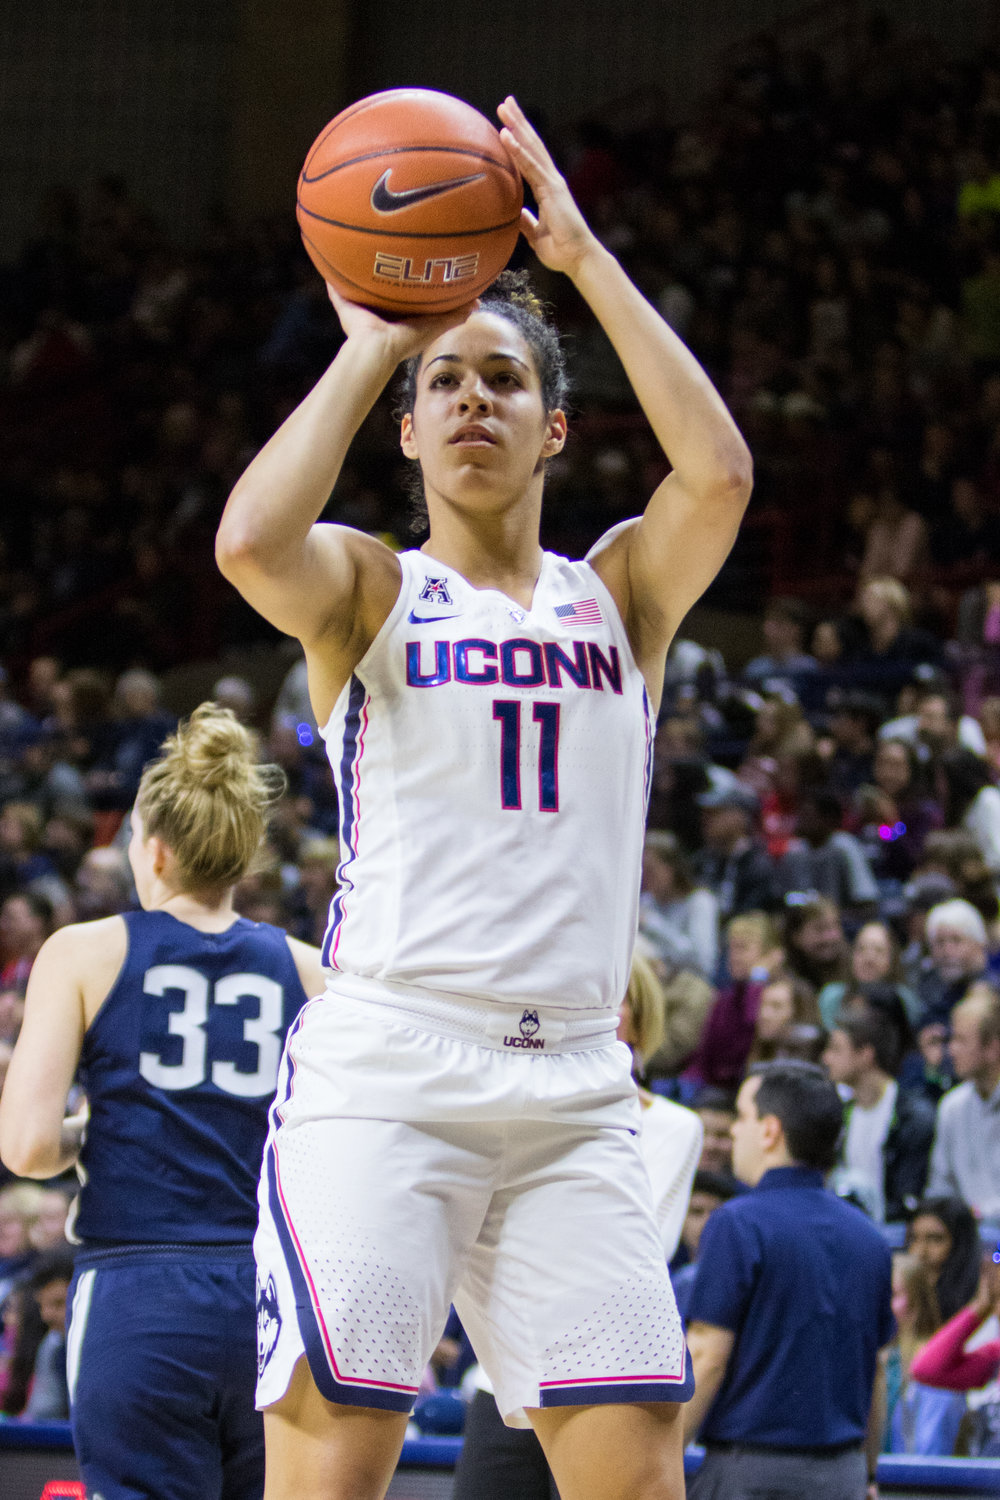 Junior guard Kia Nurse squares up for a jump shot during warm-ups.